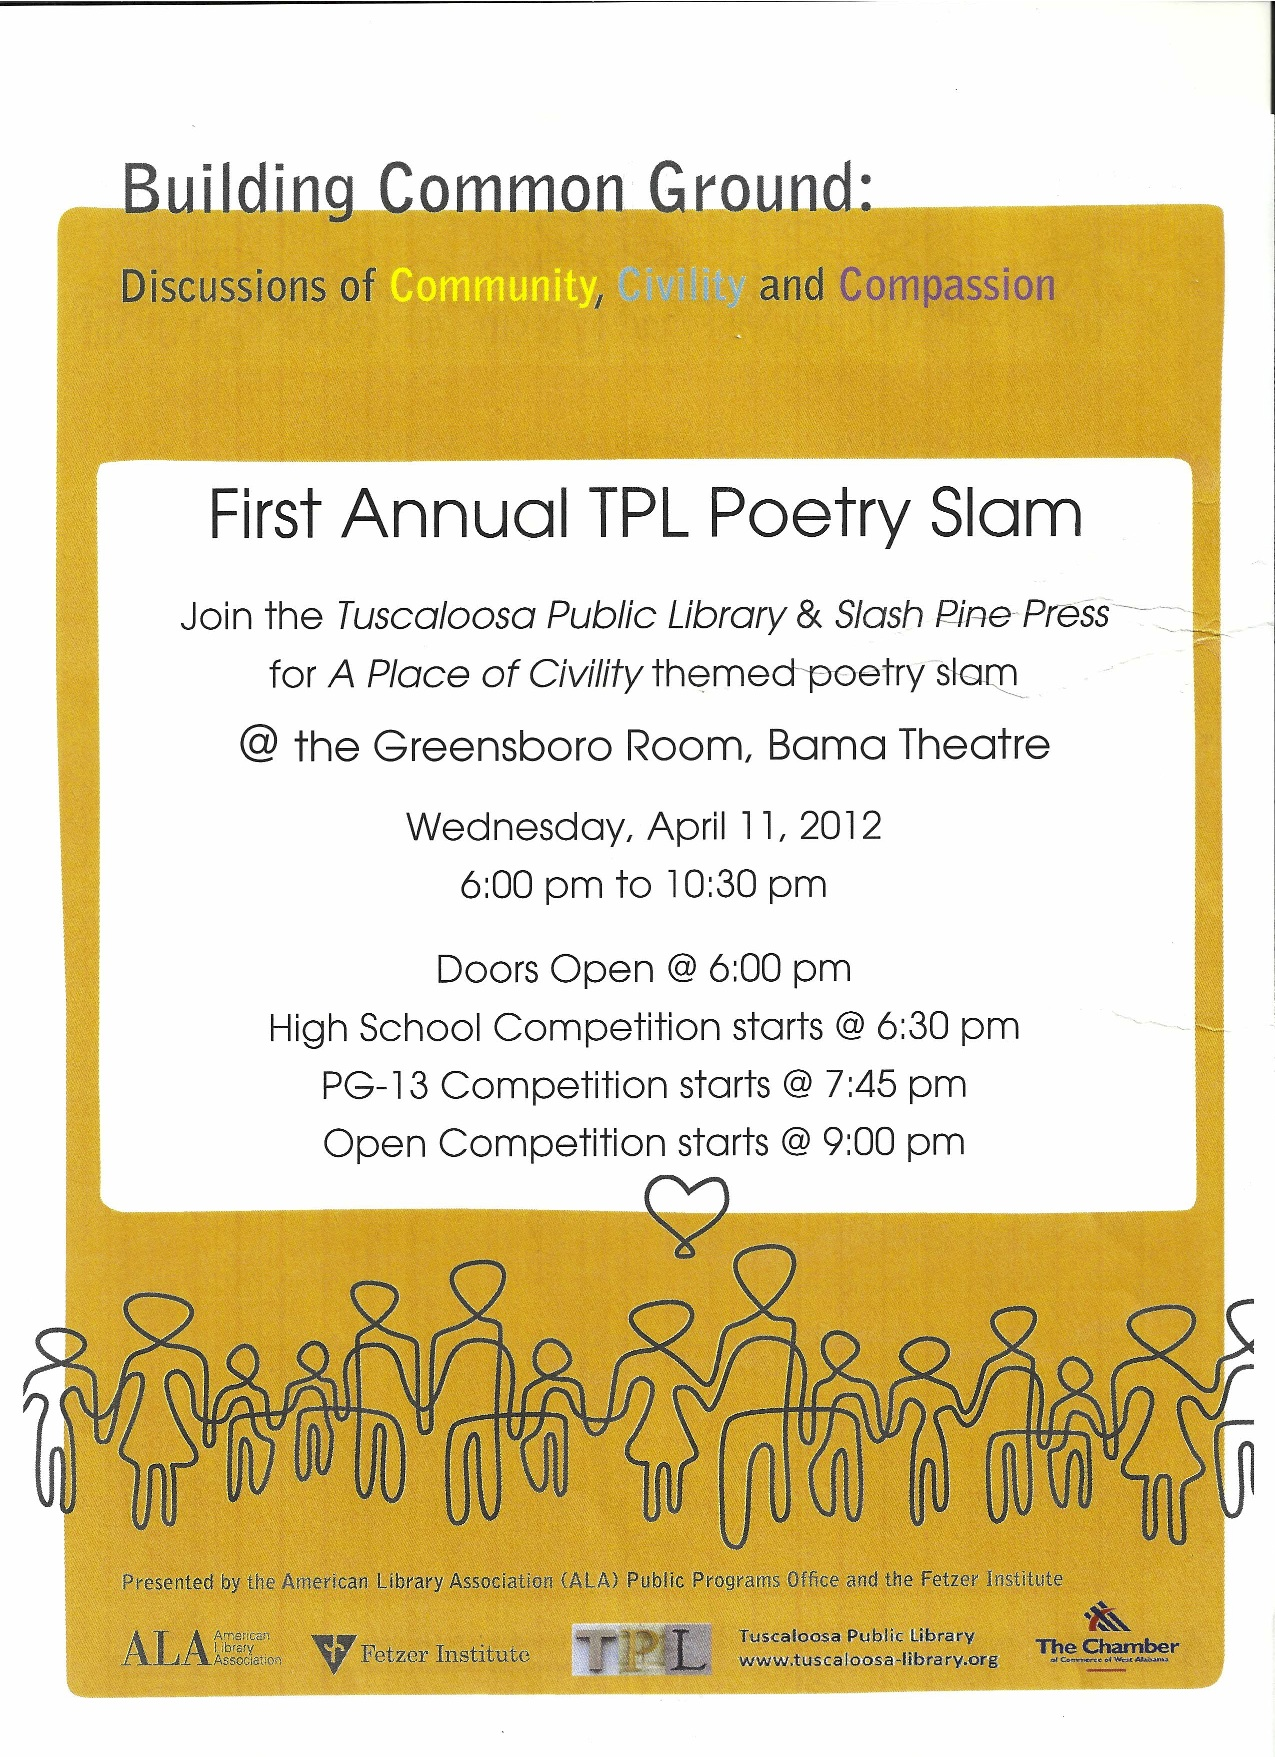 1st Annual 'A Place of Civility' Poetry Slam